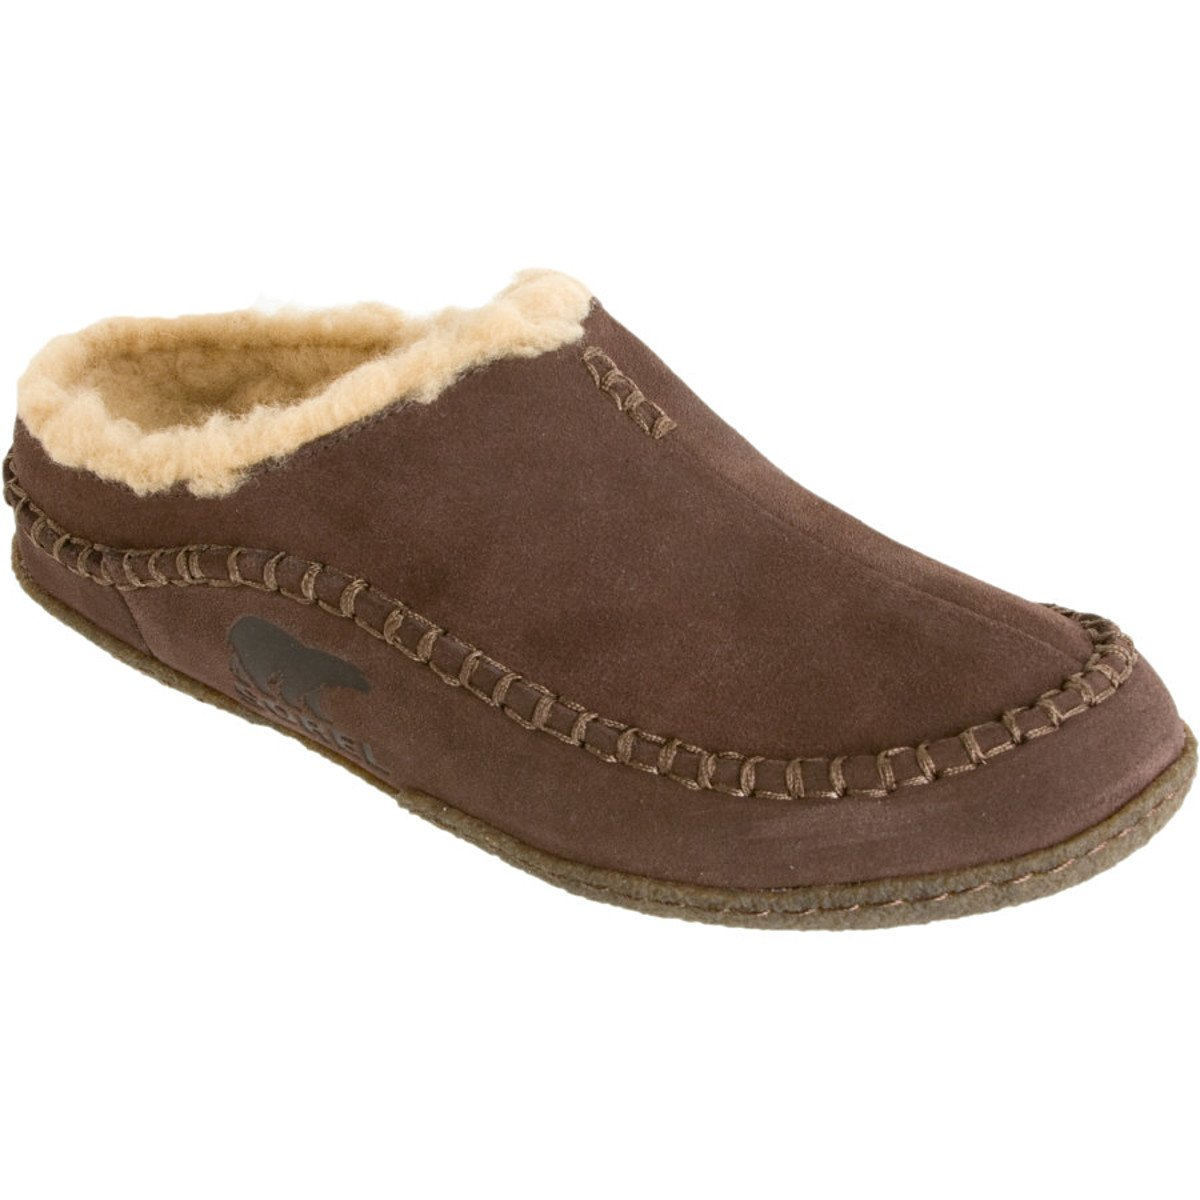 SOREL Men's Falcon Ridge Slipper,Bark,10 D - Medium